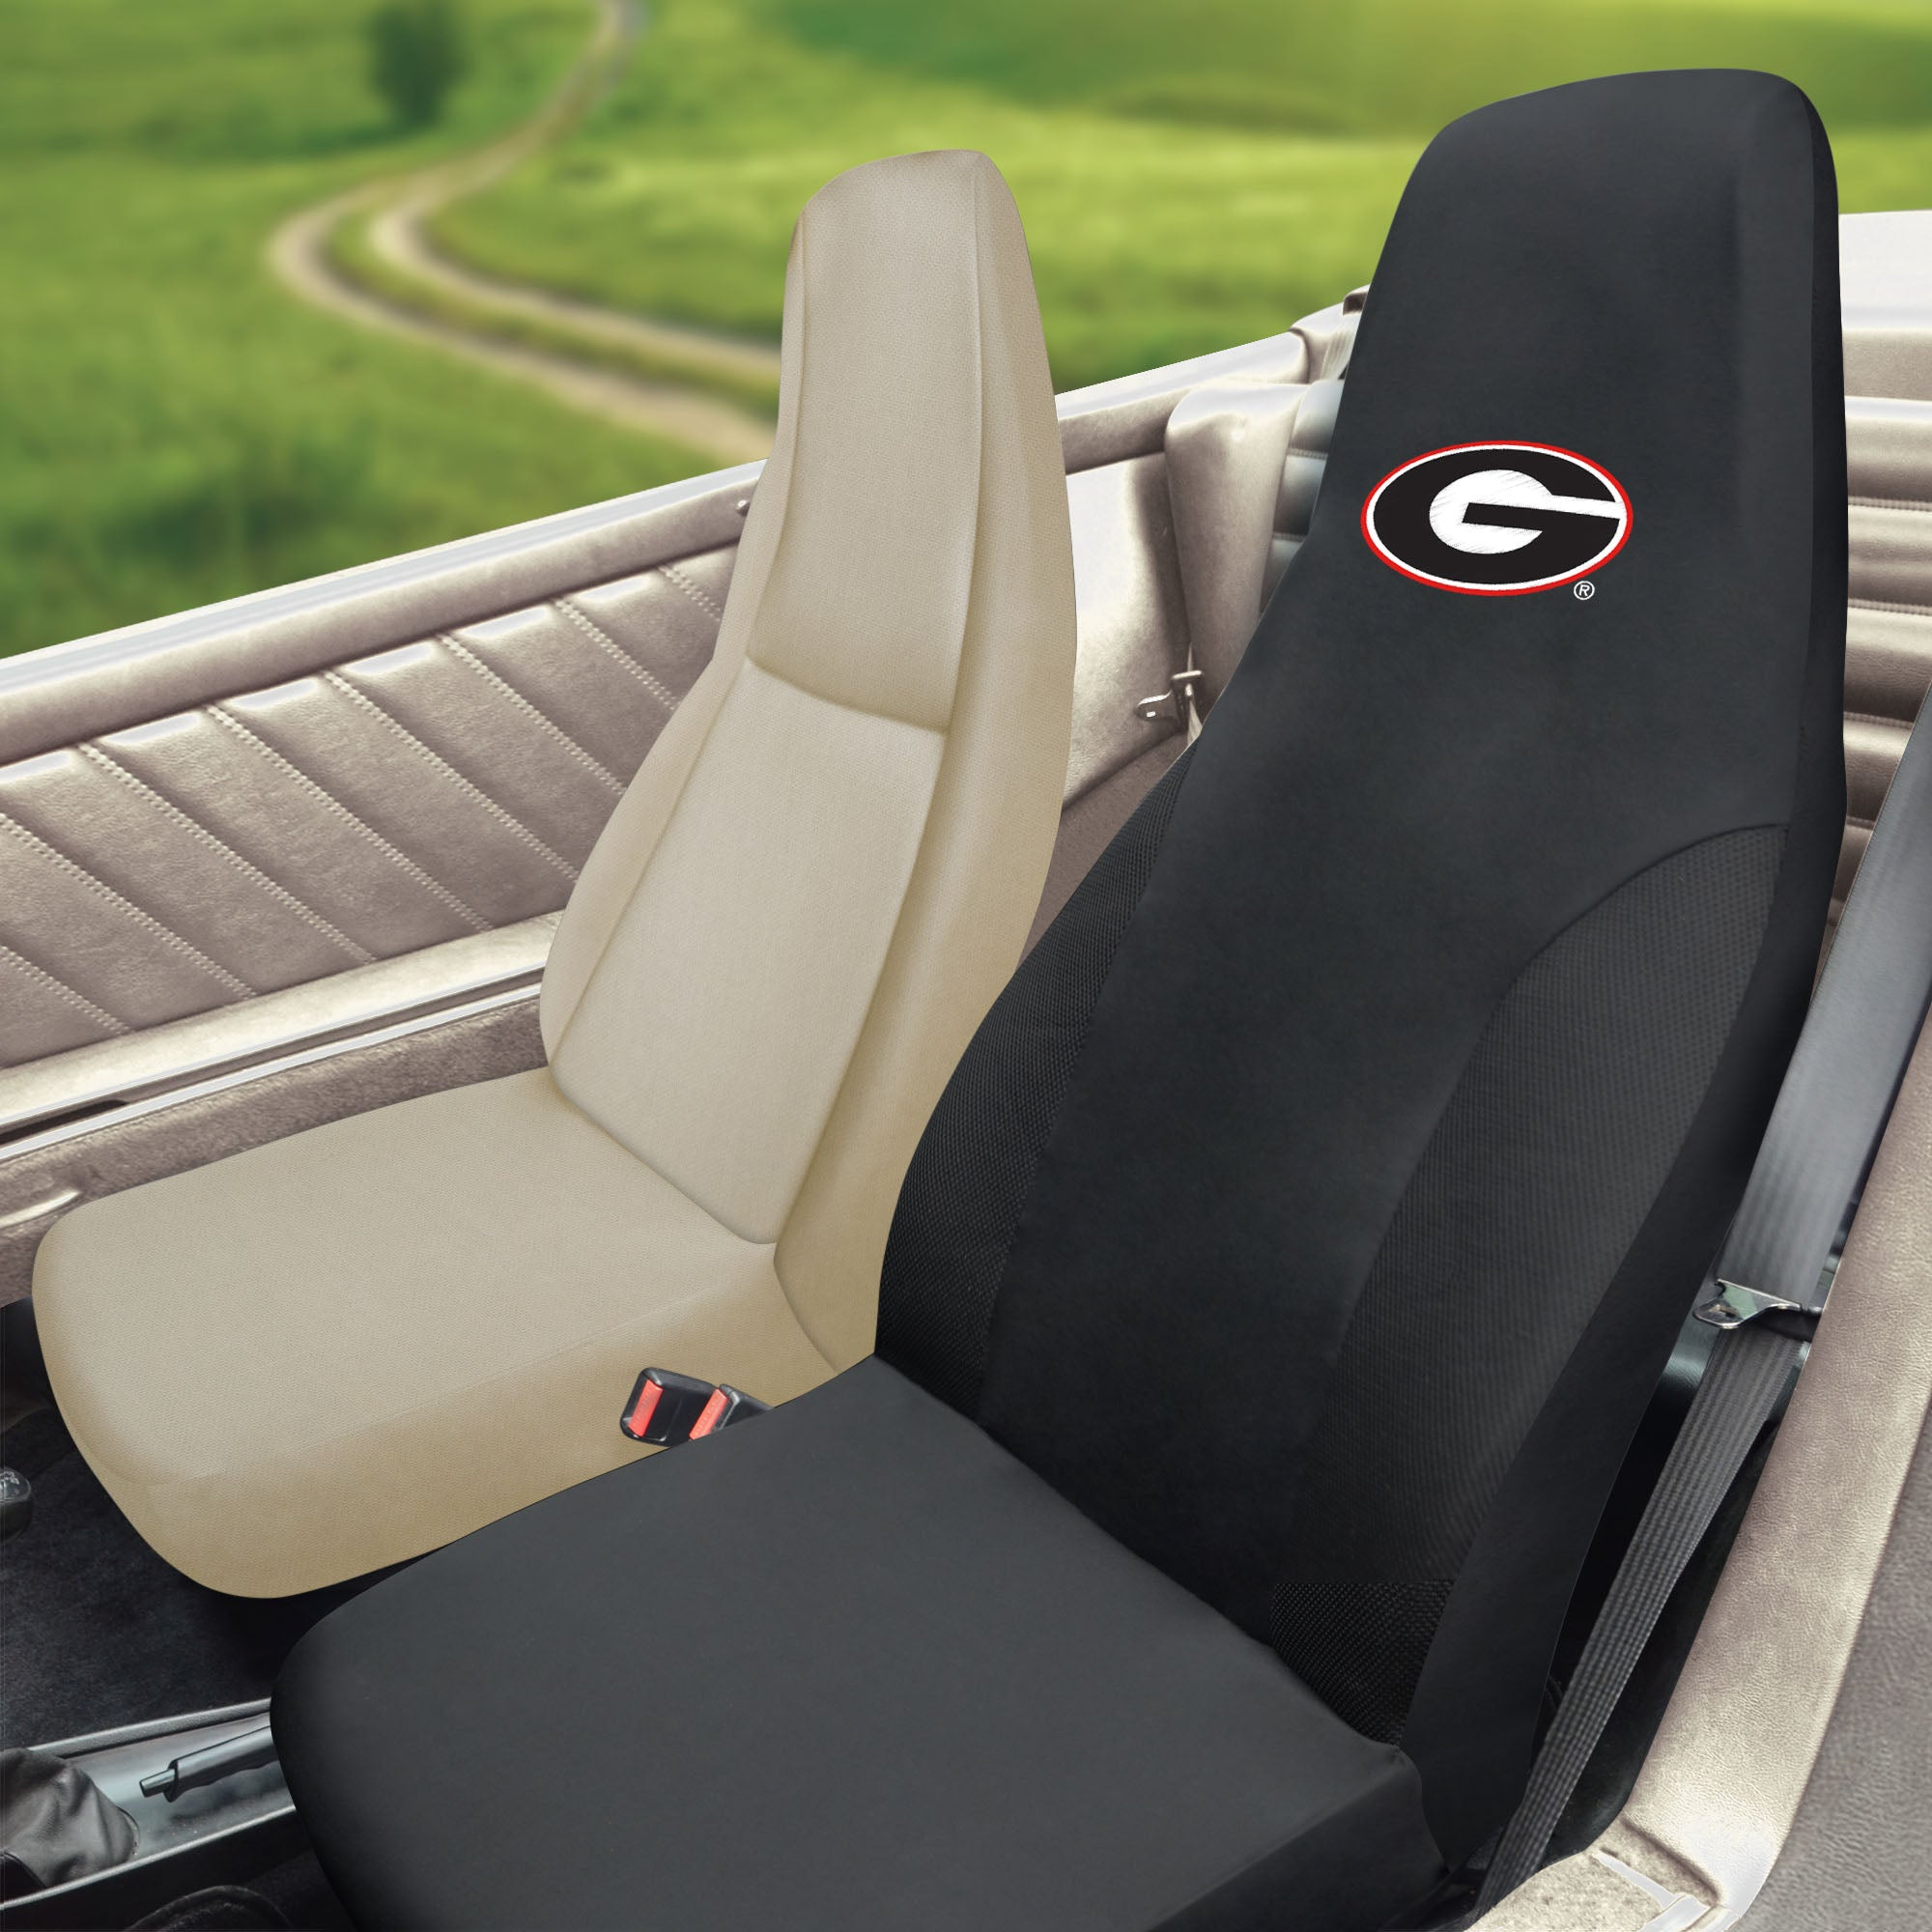 Georgia Bulldogs Set of 2 Car Seat Covers